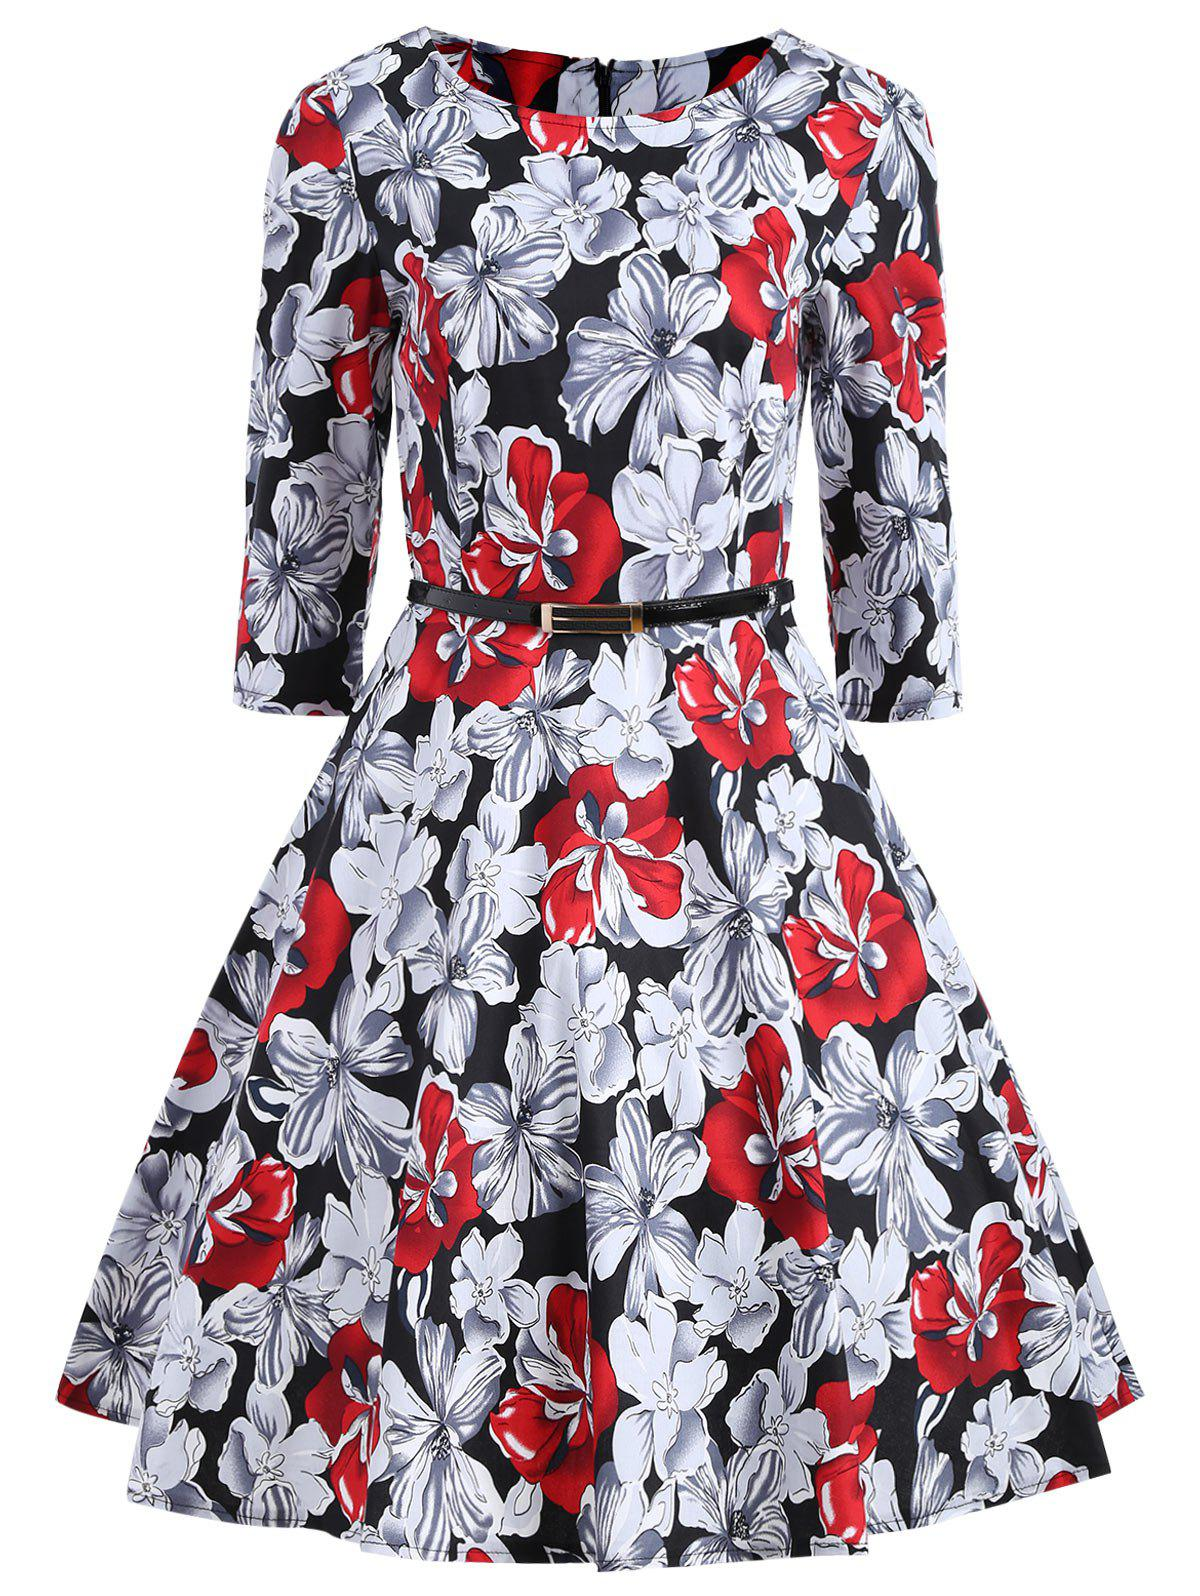 Vintage Floral Print Party A Line Dress женское платье a line slim dresses girls ladies shealth dress для live show party dancing